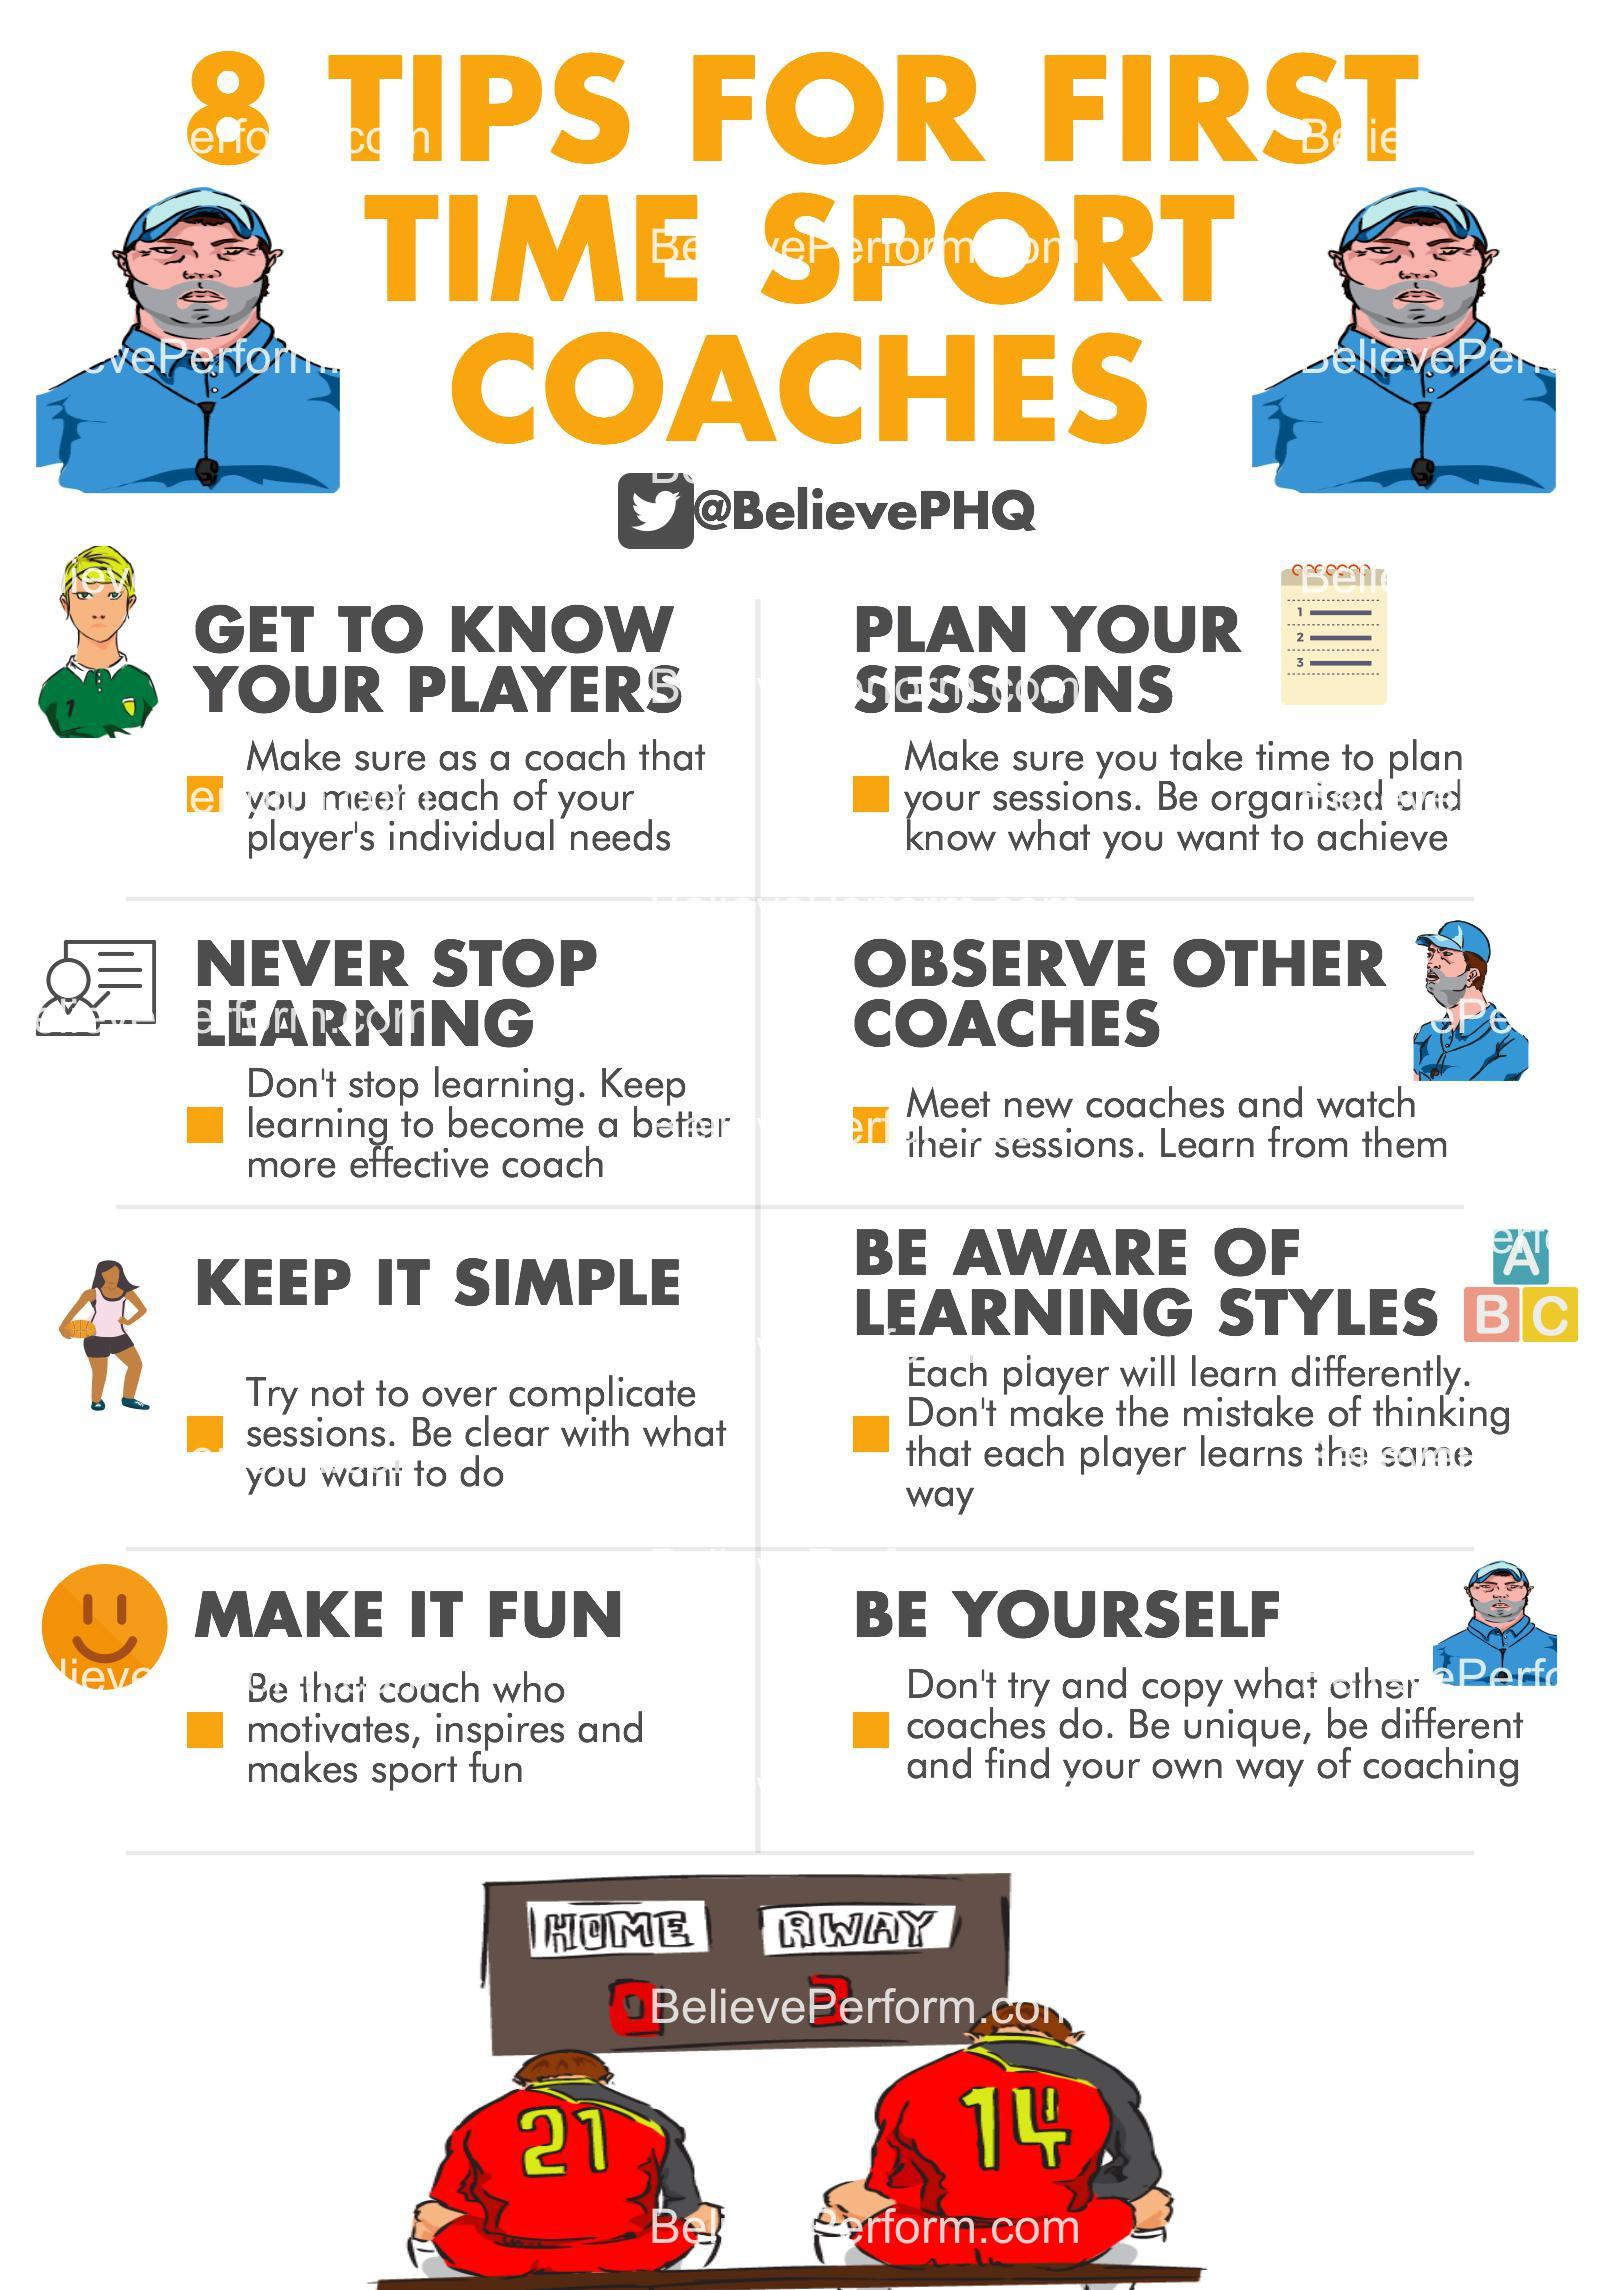 8 tips for first time sport coaches